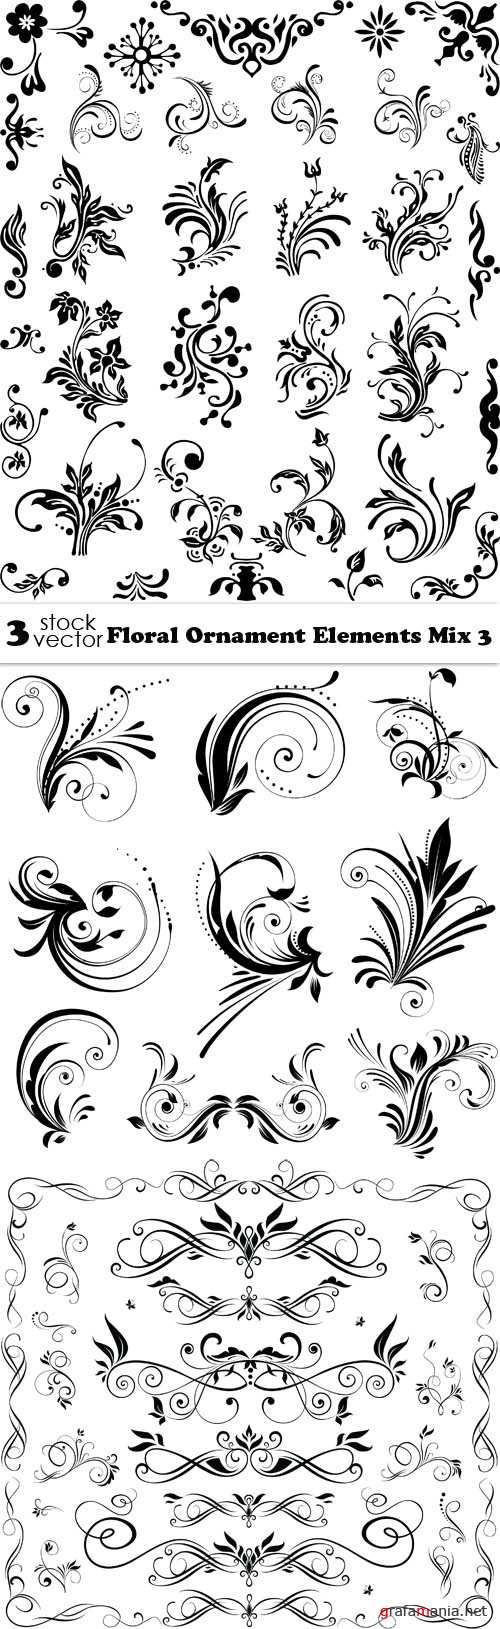 Vectors - Floral Ornament Elements Mix 3